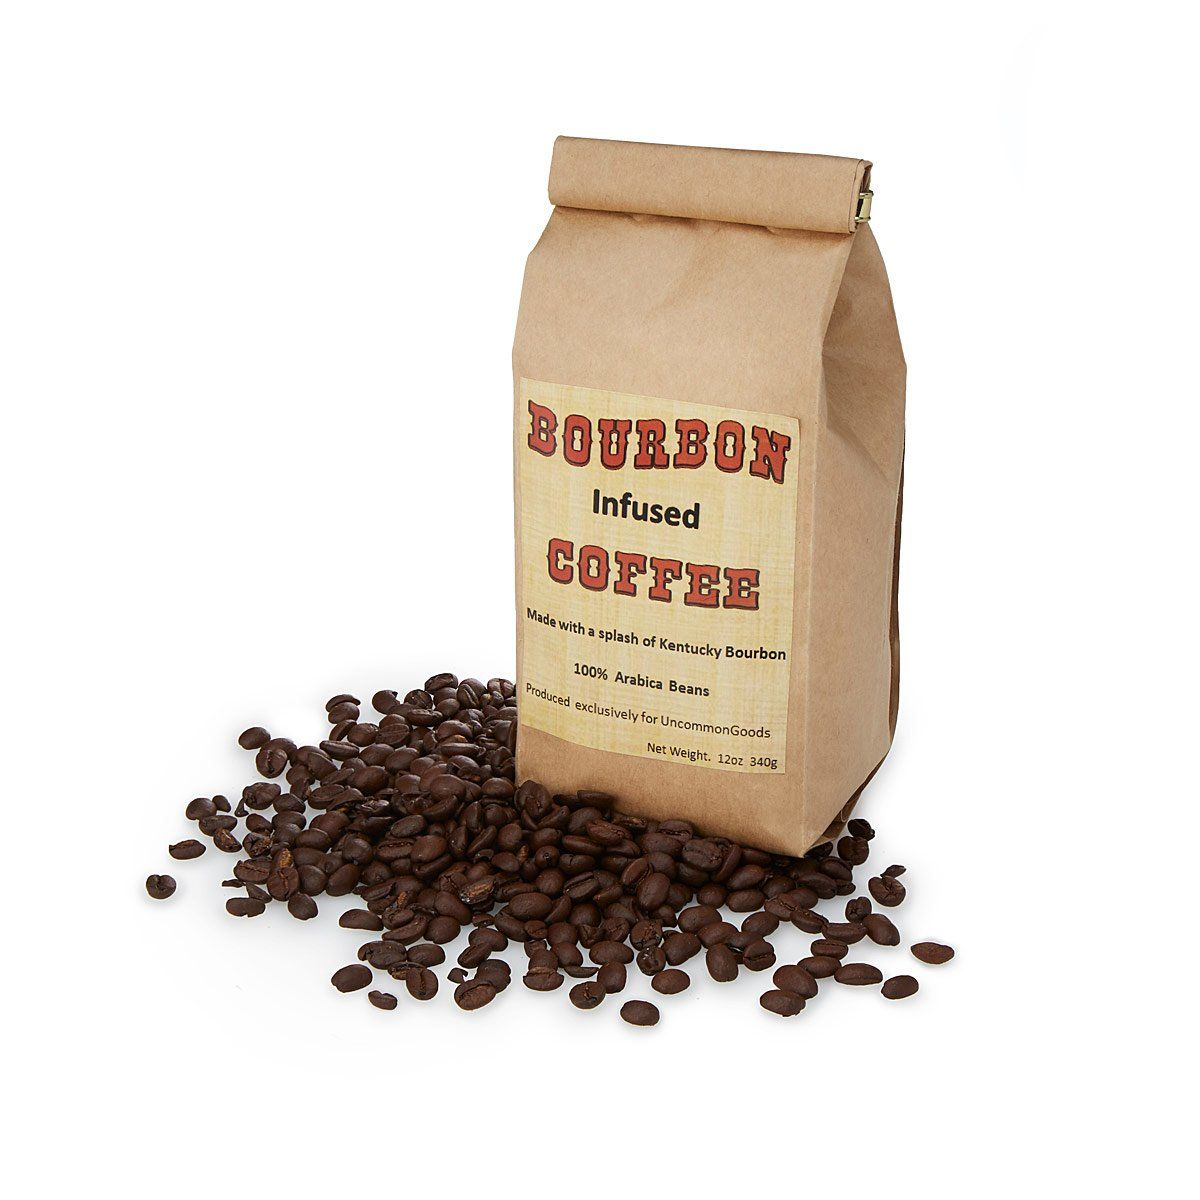 Bourbon infused coffee whiskey flavored coffee beans